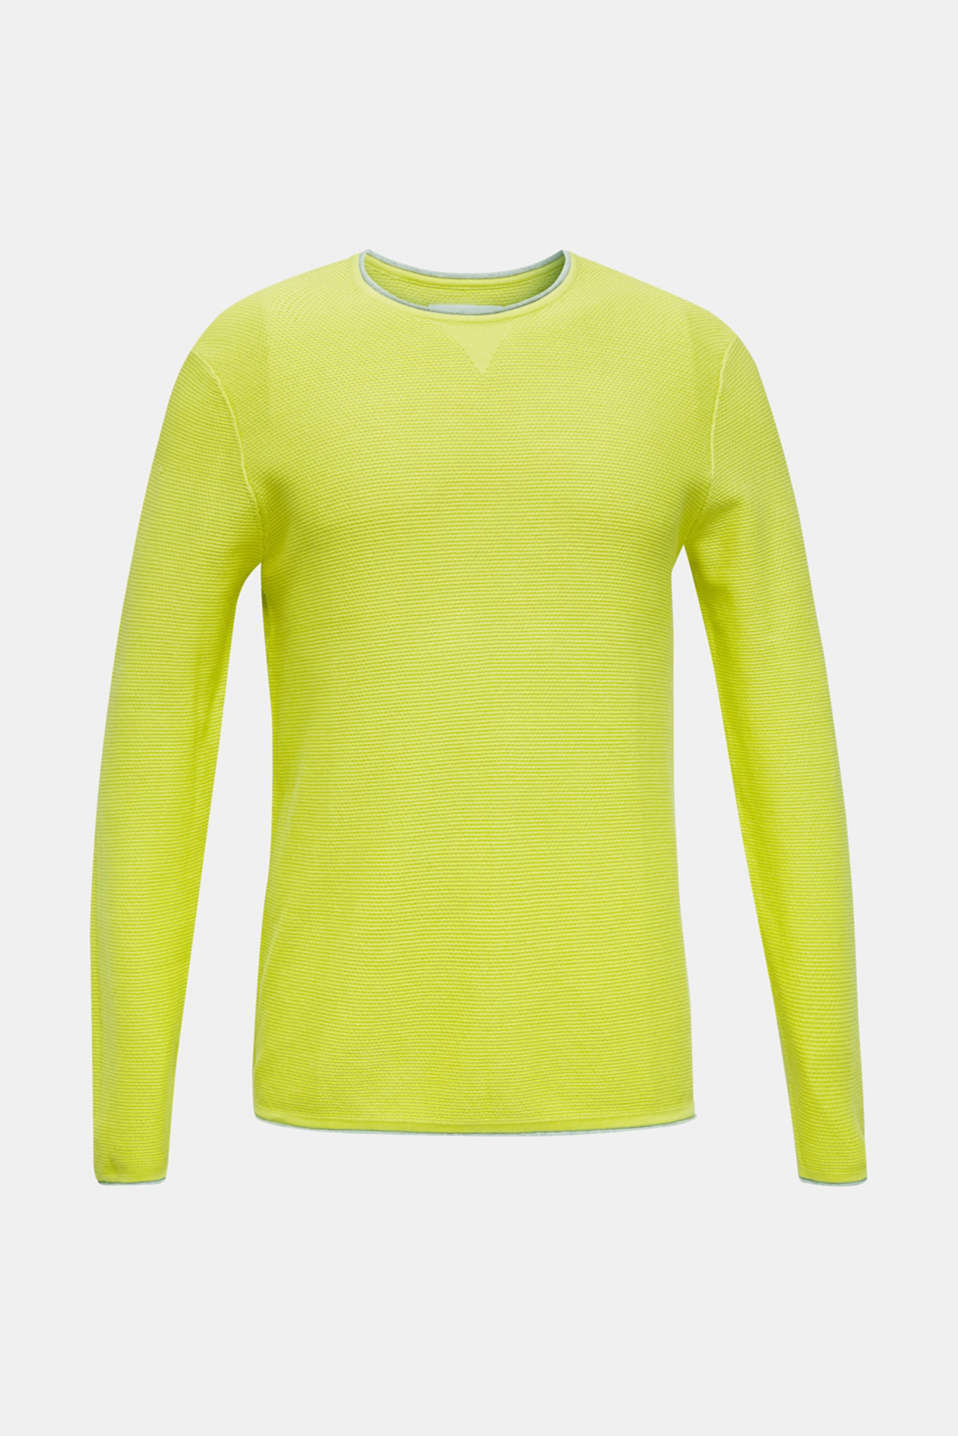 Textured jumper made of 100% cotton, BRIGHT YELLOW, detail image number 7